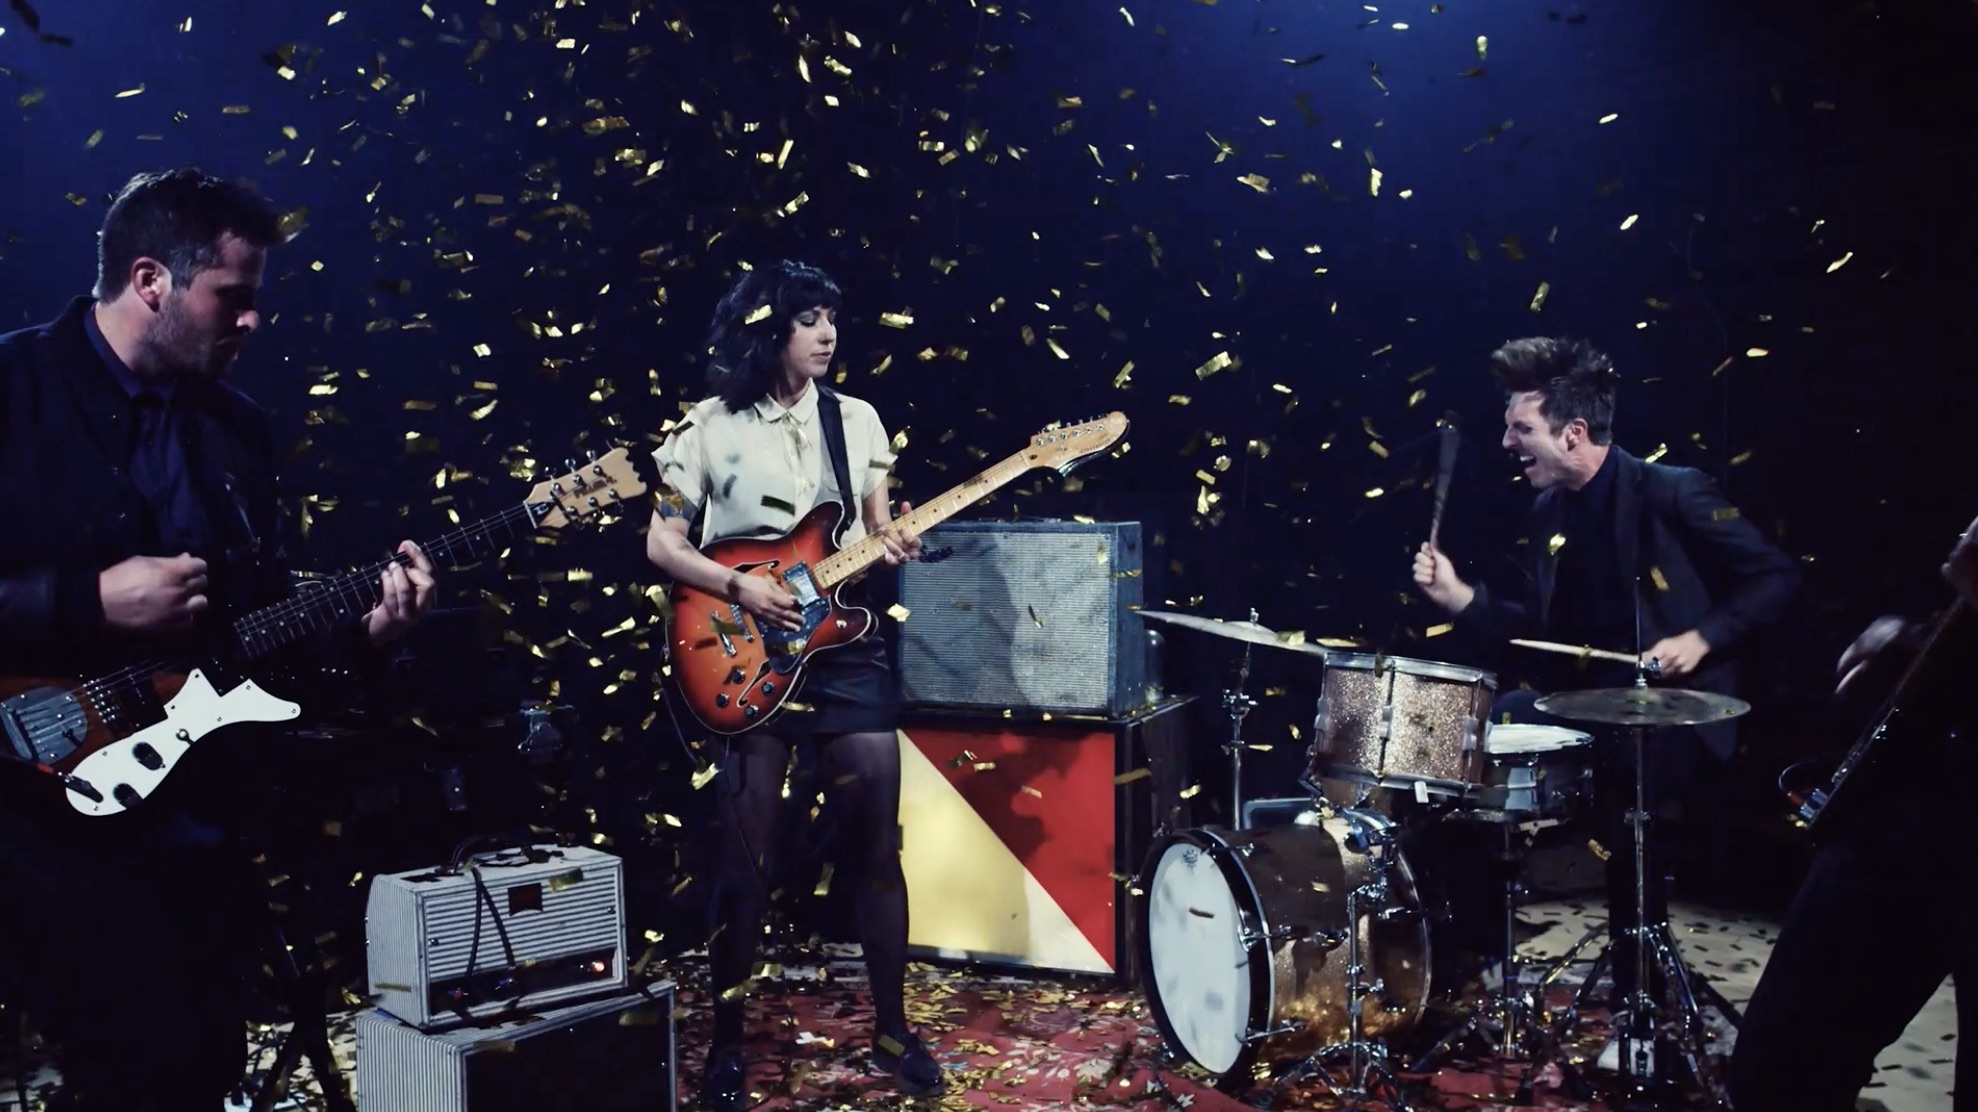 The girl from The Shins has her own band, and their latest music video is awesome AF